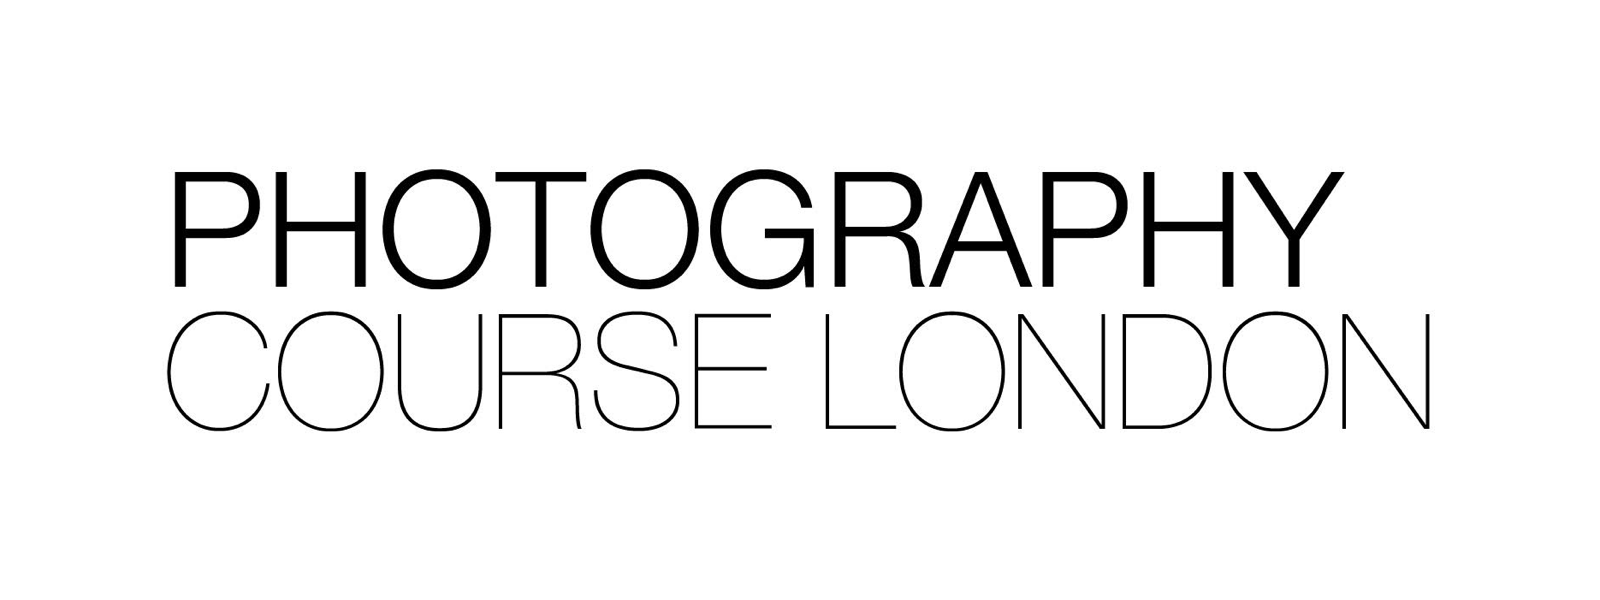 Photoshop For Graphic Design by Photography Course London - photography in London